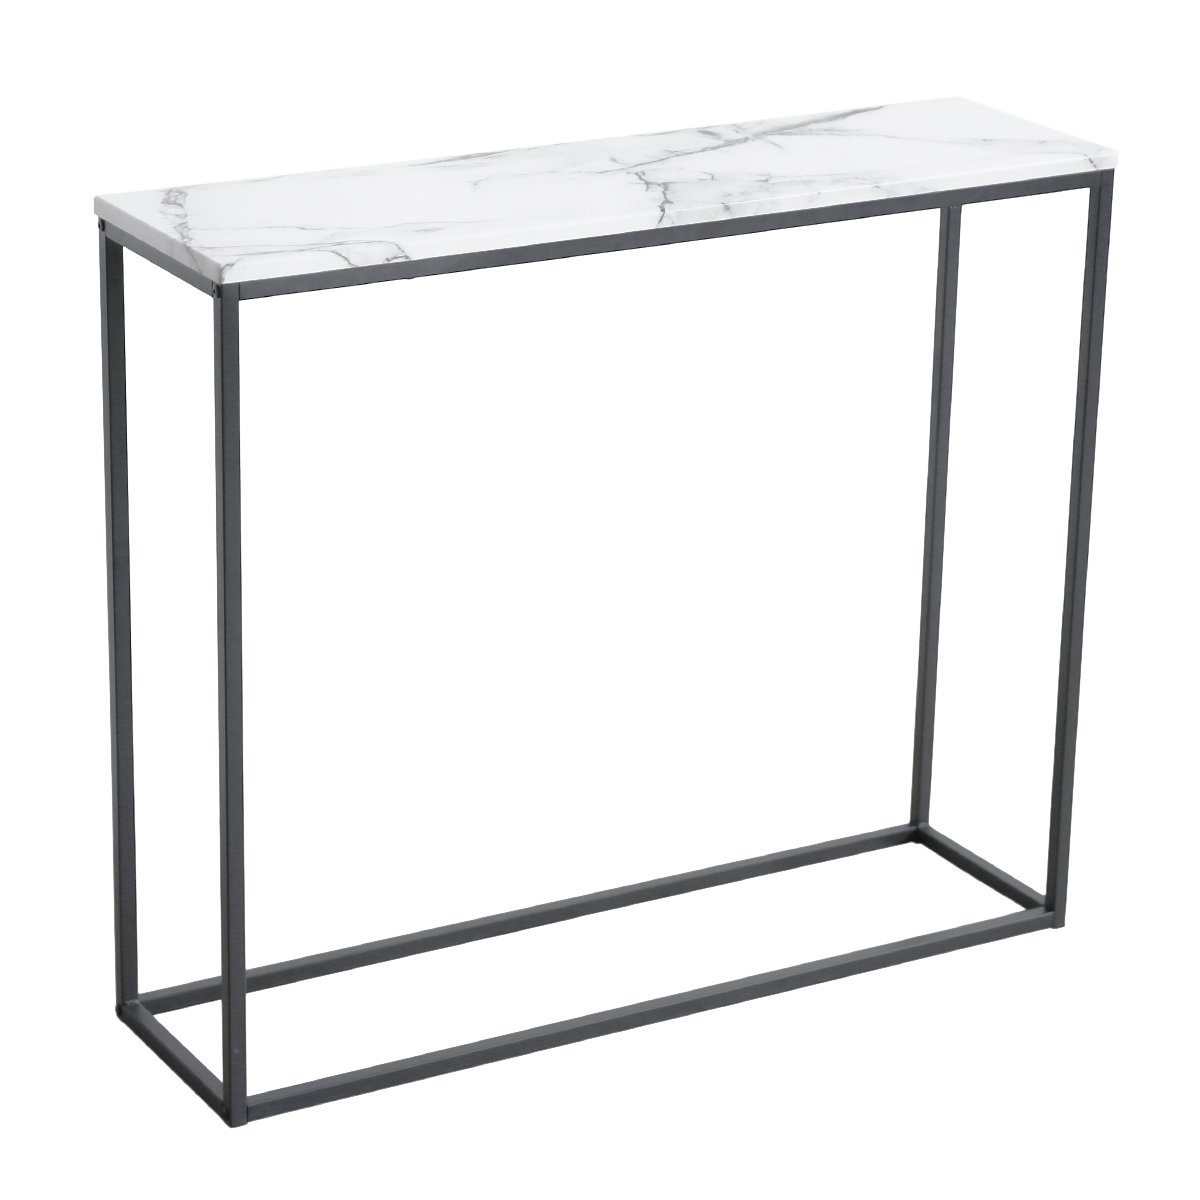 Ordinaire Amazon.com: Roomfitters Sofa Console Table Marble Print Top Metal Frame  Accent White Narrow Foyer Hall Table,White: Kitchen U0026 Dining